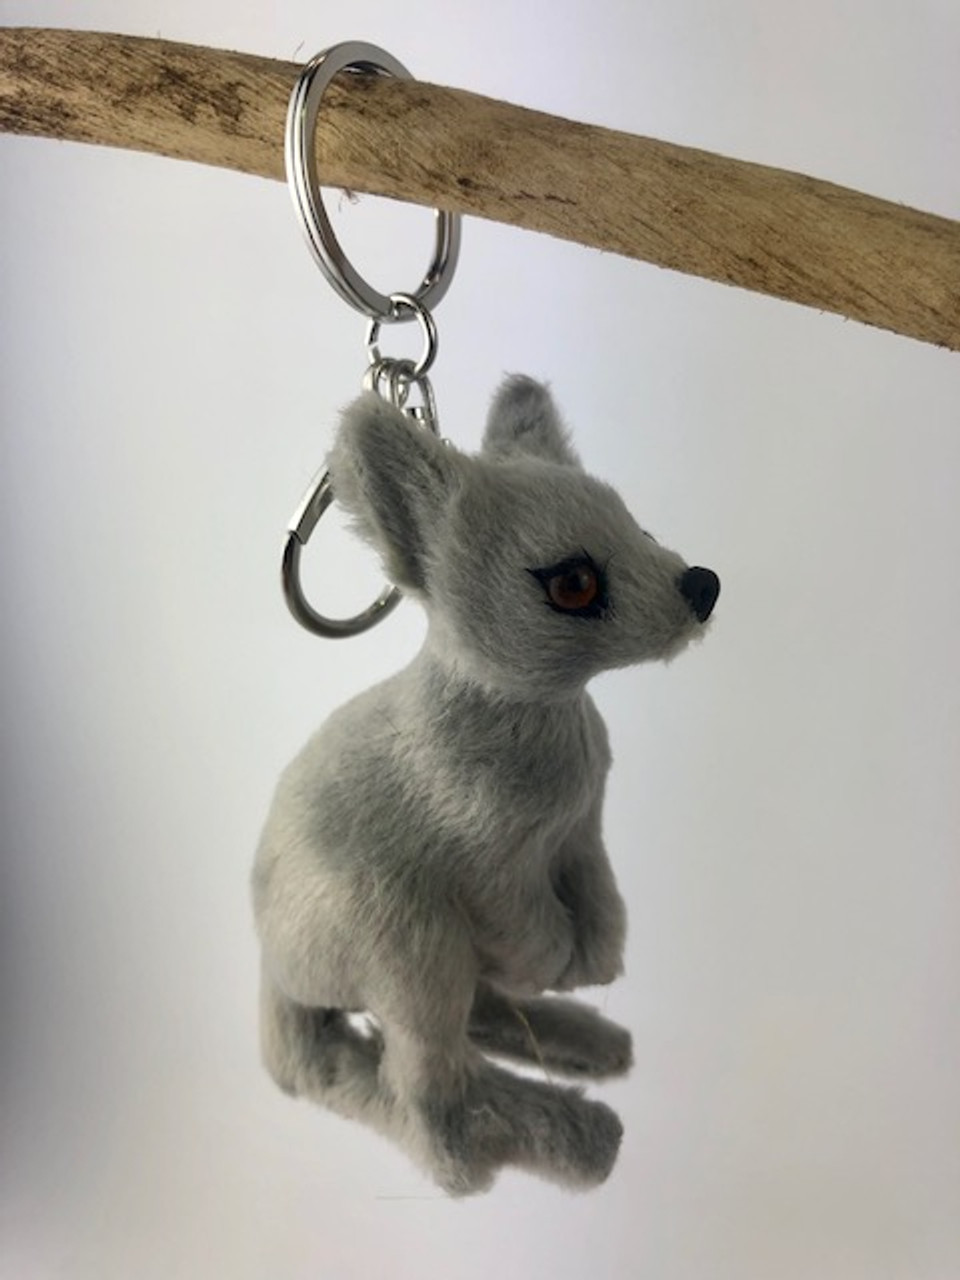 Gorgeous Furry Friends Keyring GREY KANGAROO. Collect them all